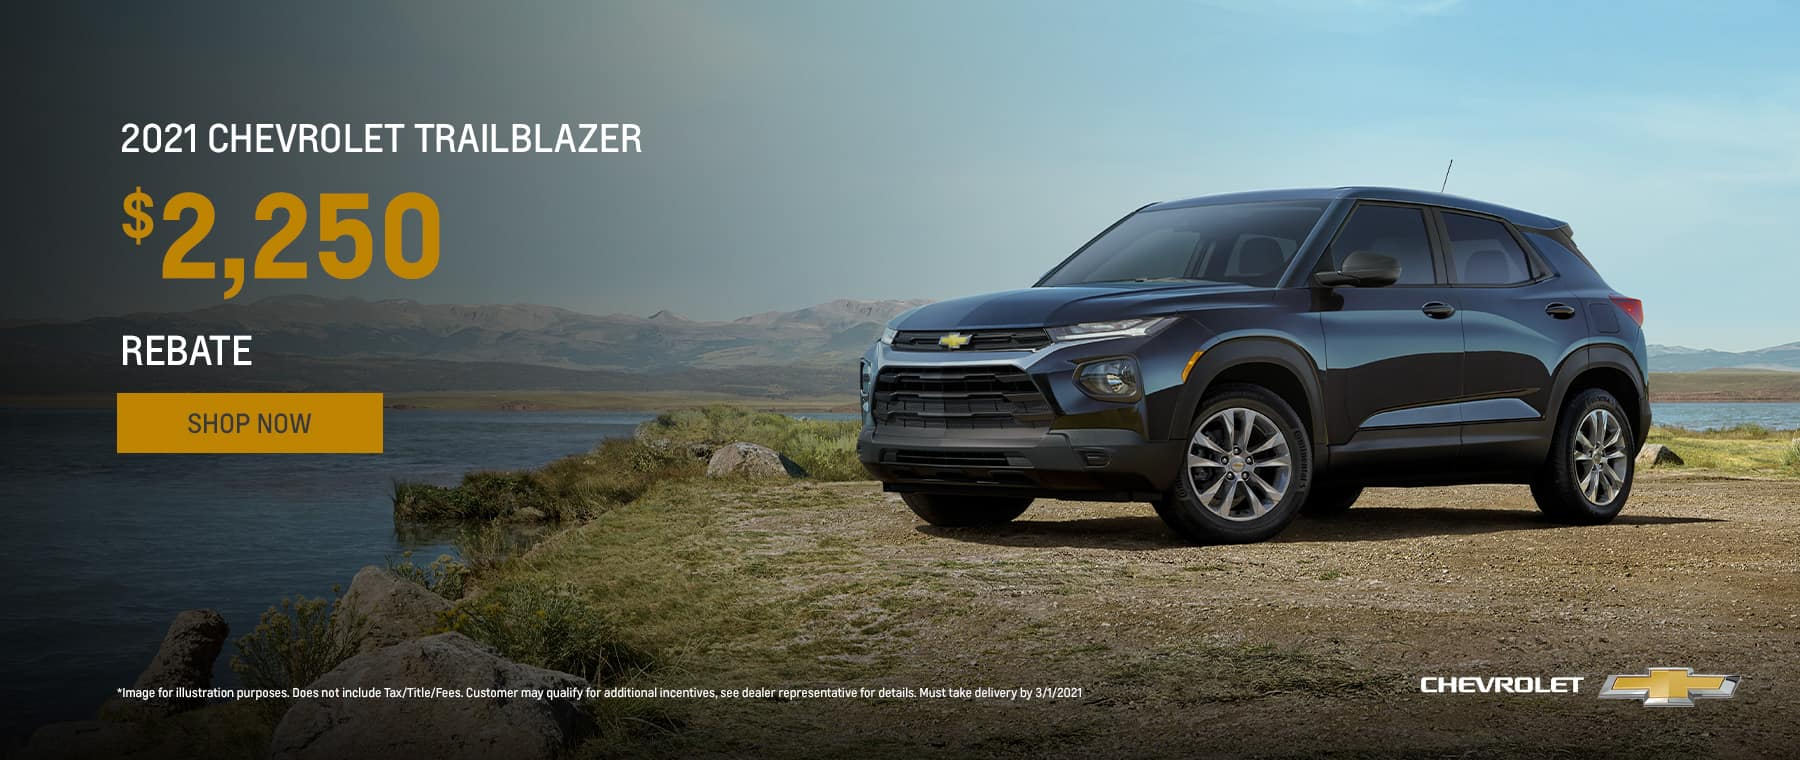 2021 Chevrolet Trailblazer $2,250 Rebate